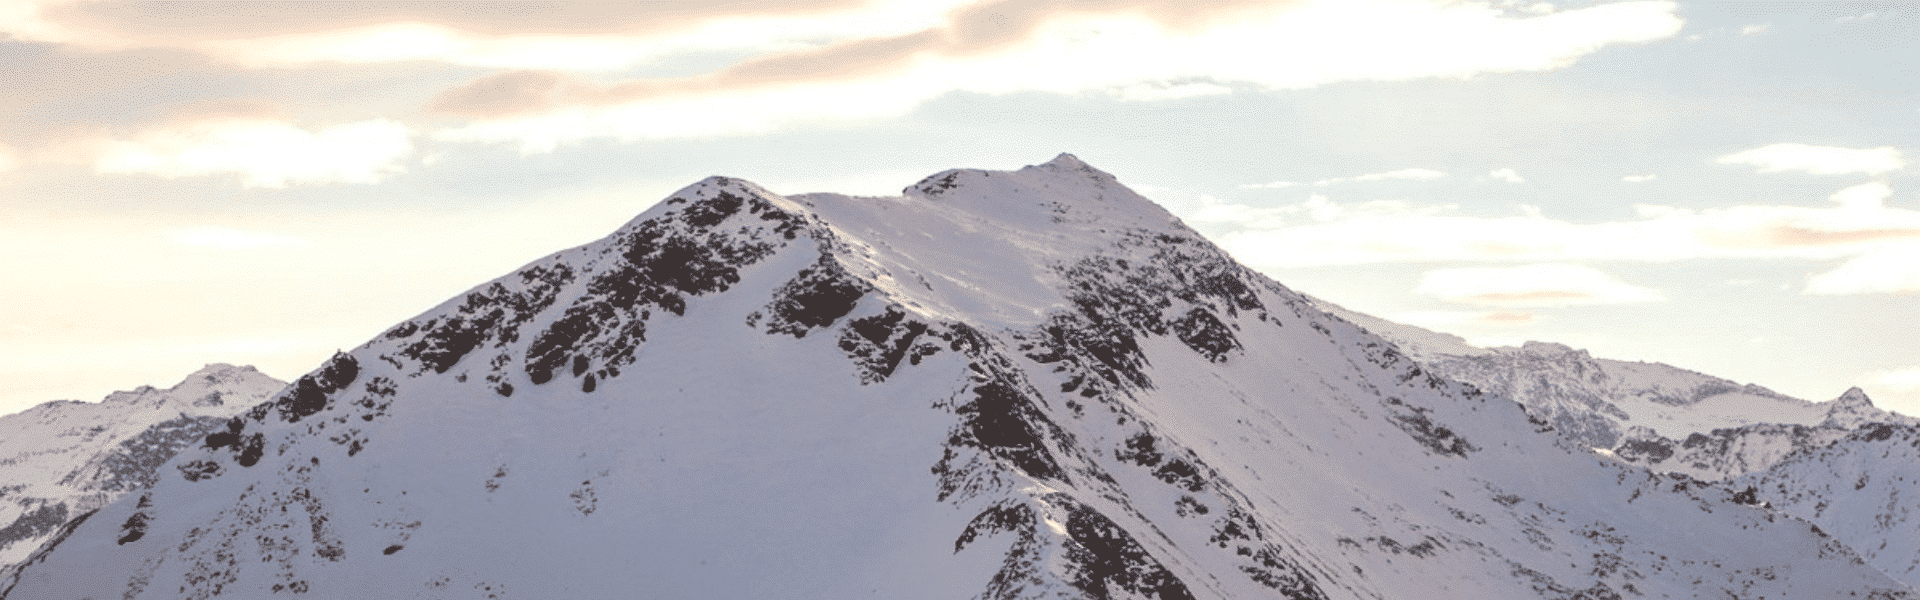 Snowy mountains with pink clouds